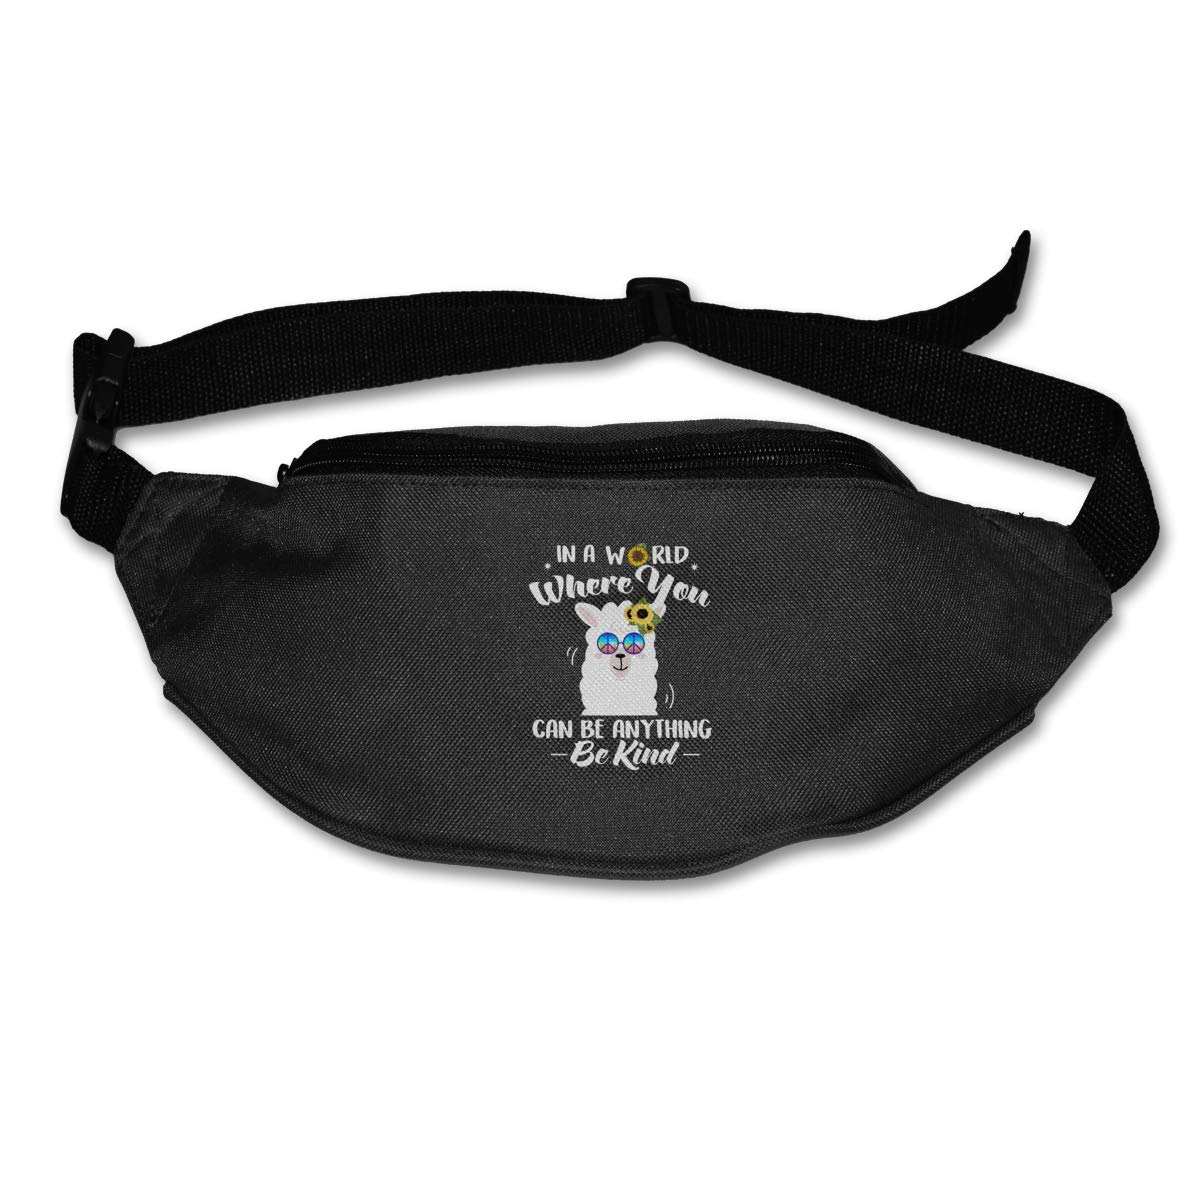 In A World Where You Can Be Anything Be Kind Waist Pack Fanny Pack Adjustable